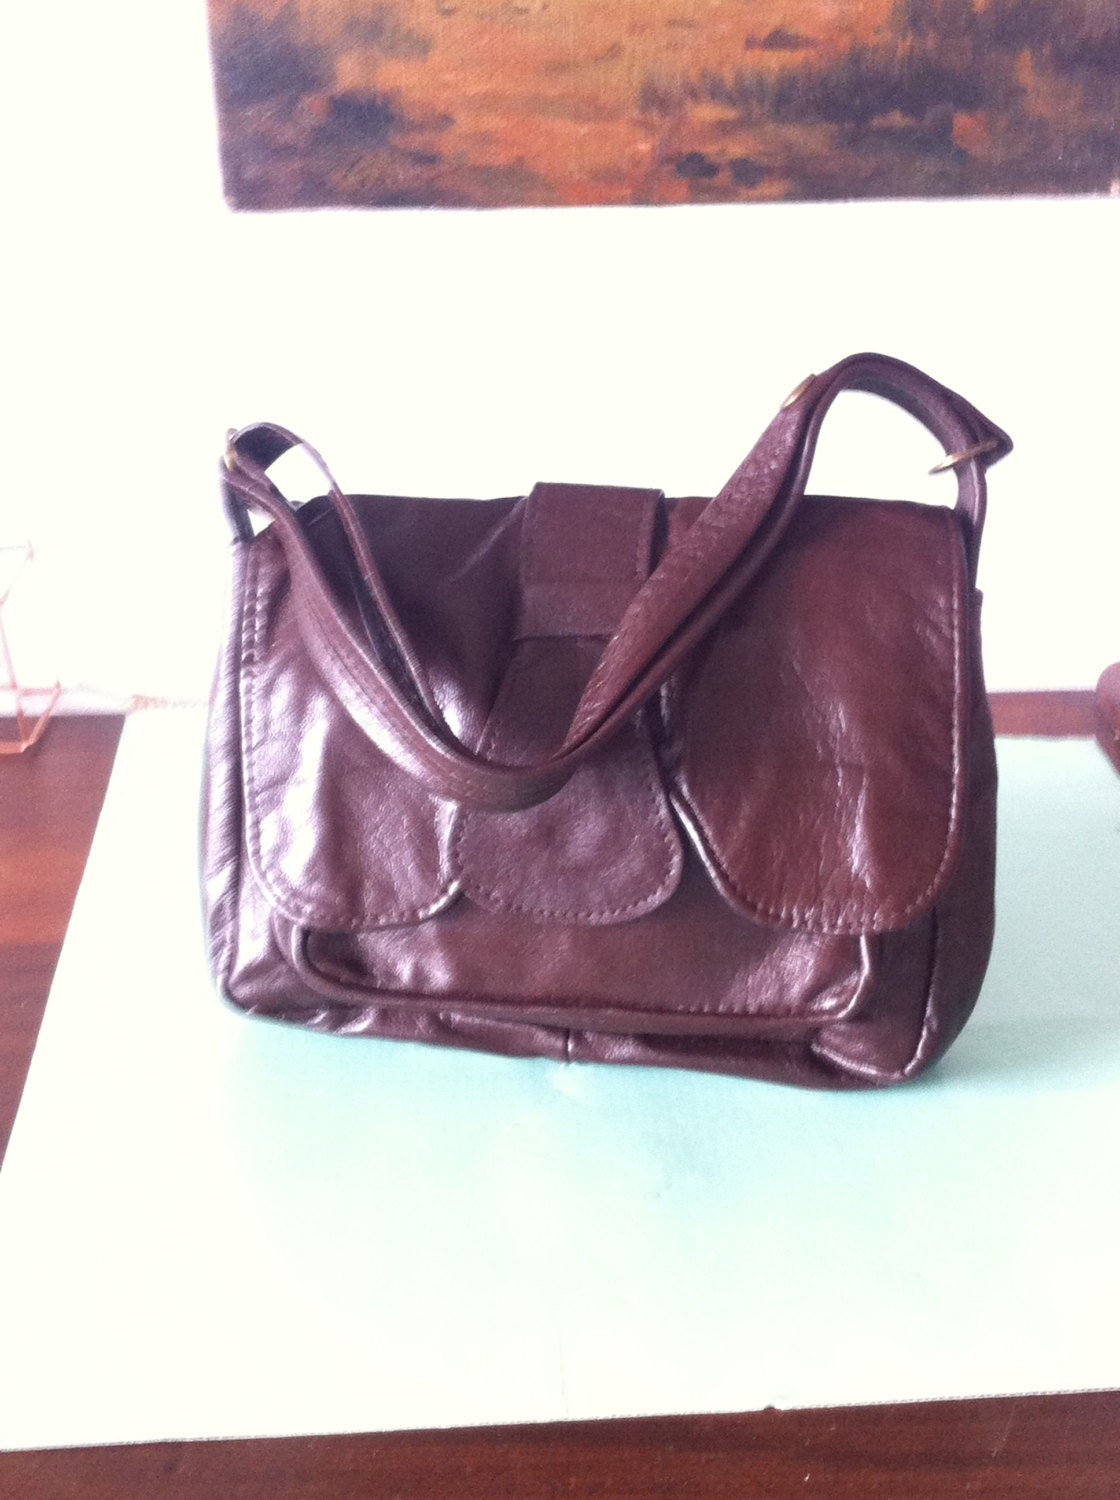 Vintage 70s brown brand new leather handbag evening purse grab purse shoulder bag